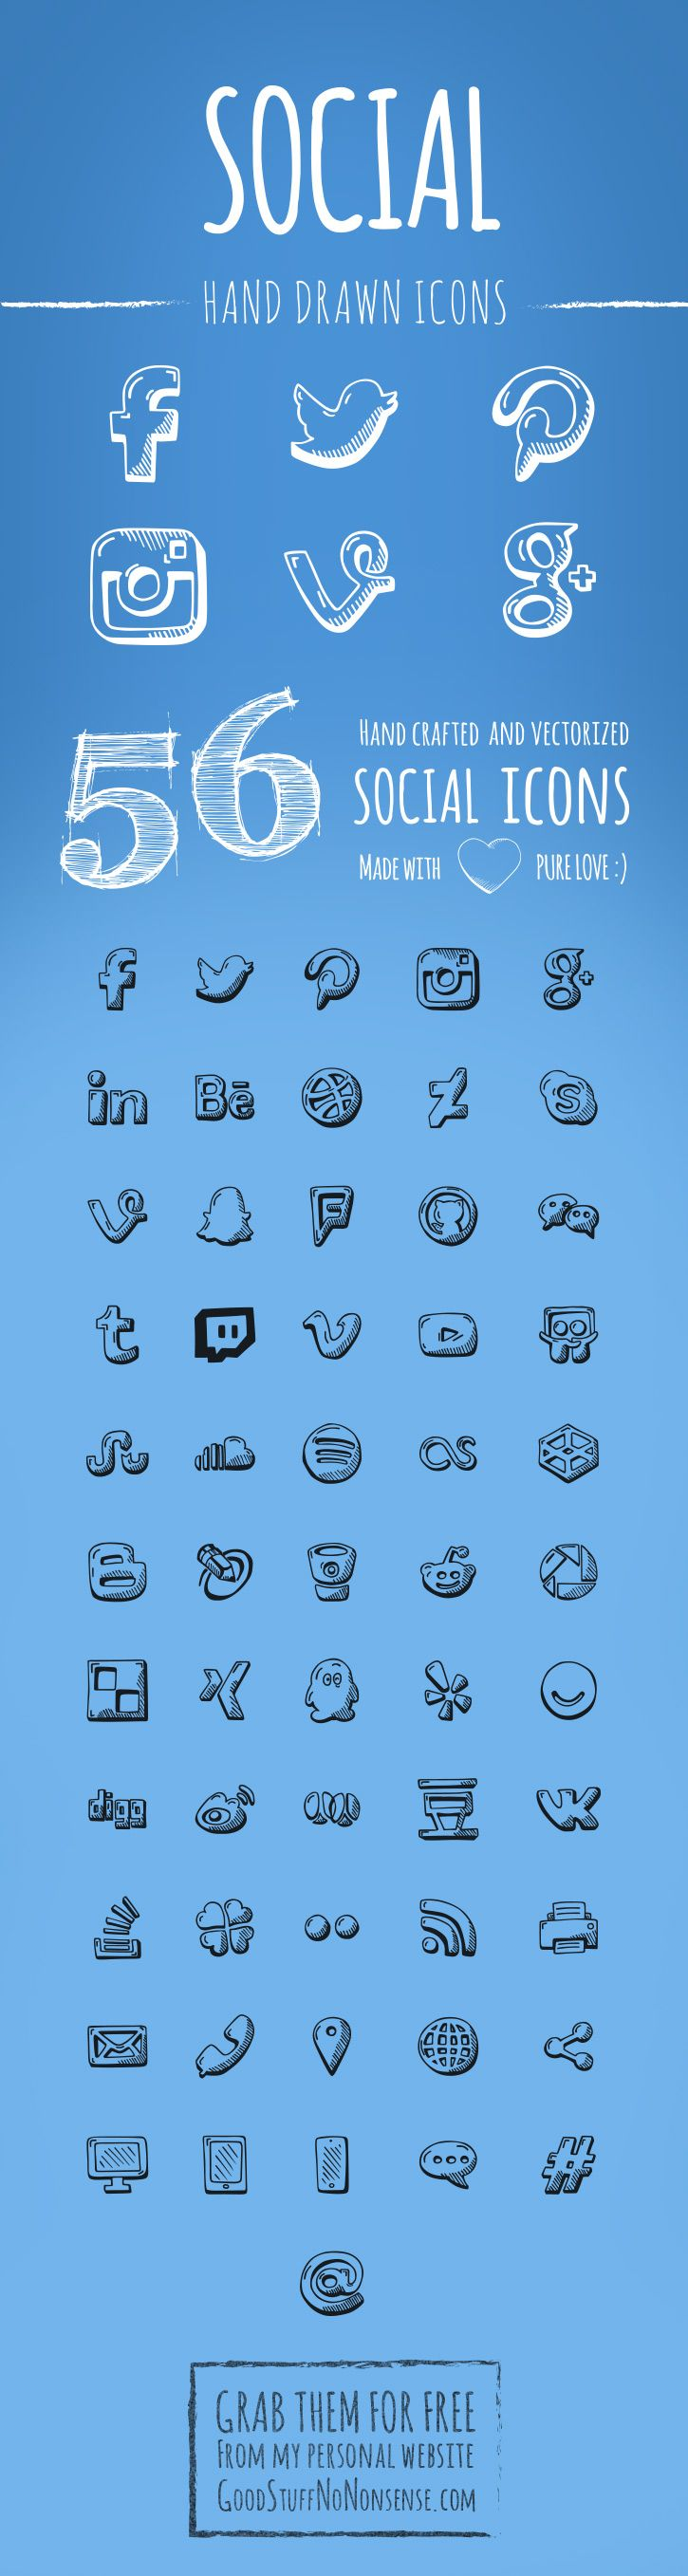 Hand drawn social icons to grab for free and use as you please.